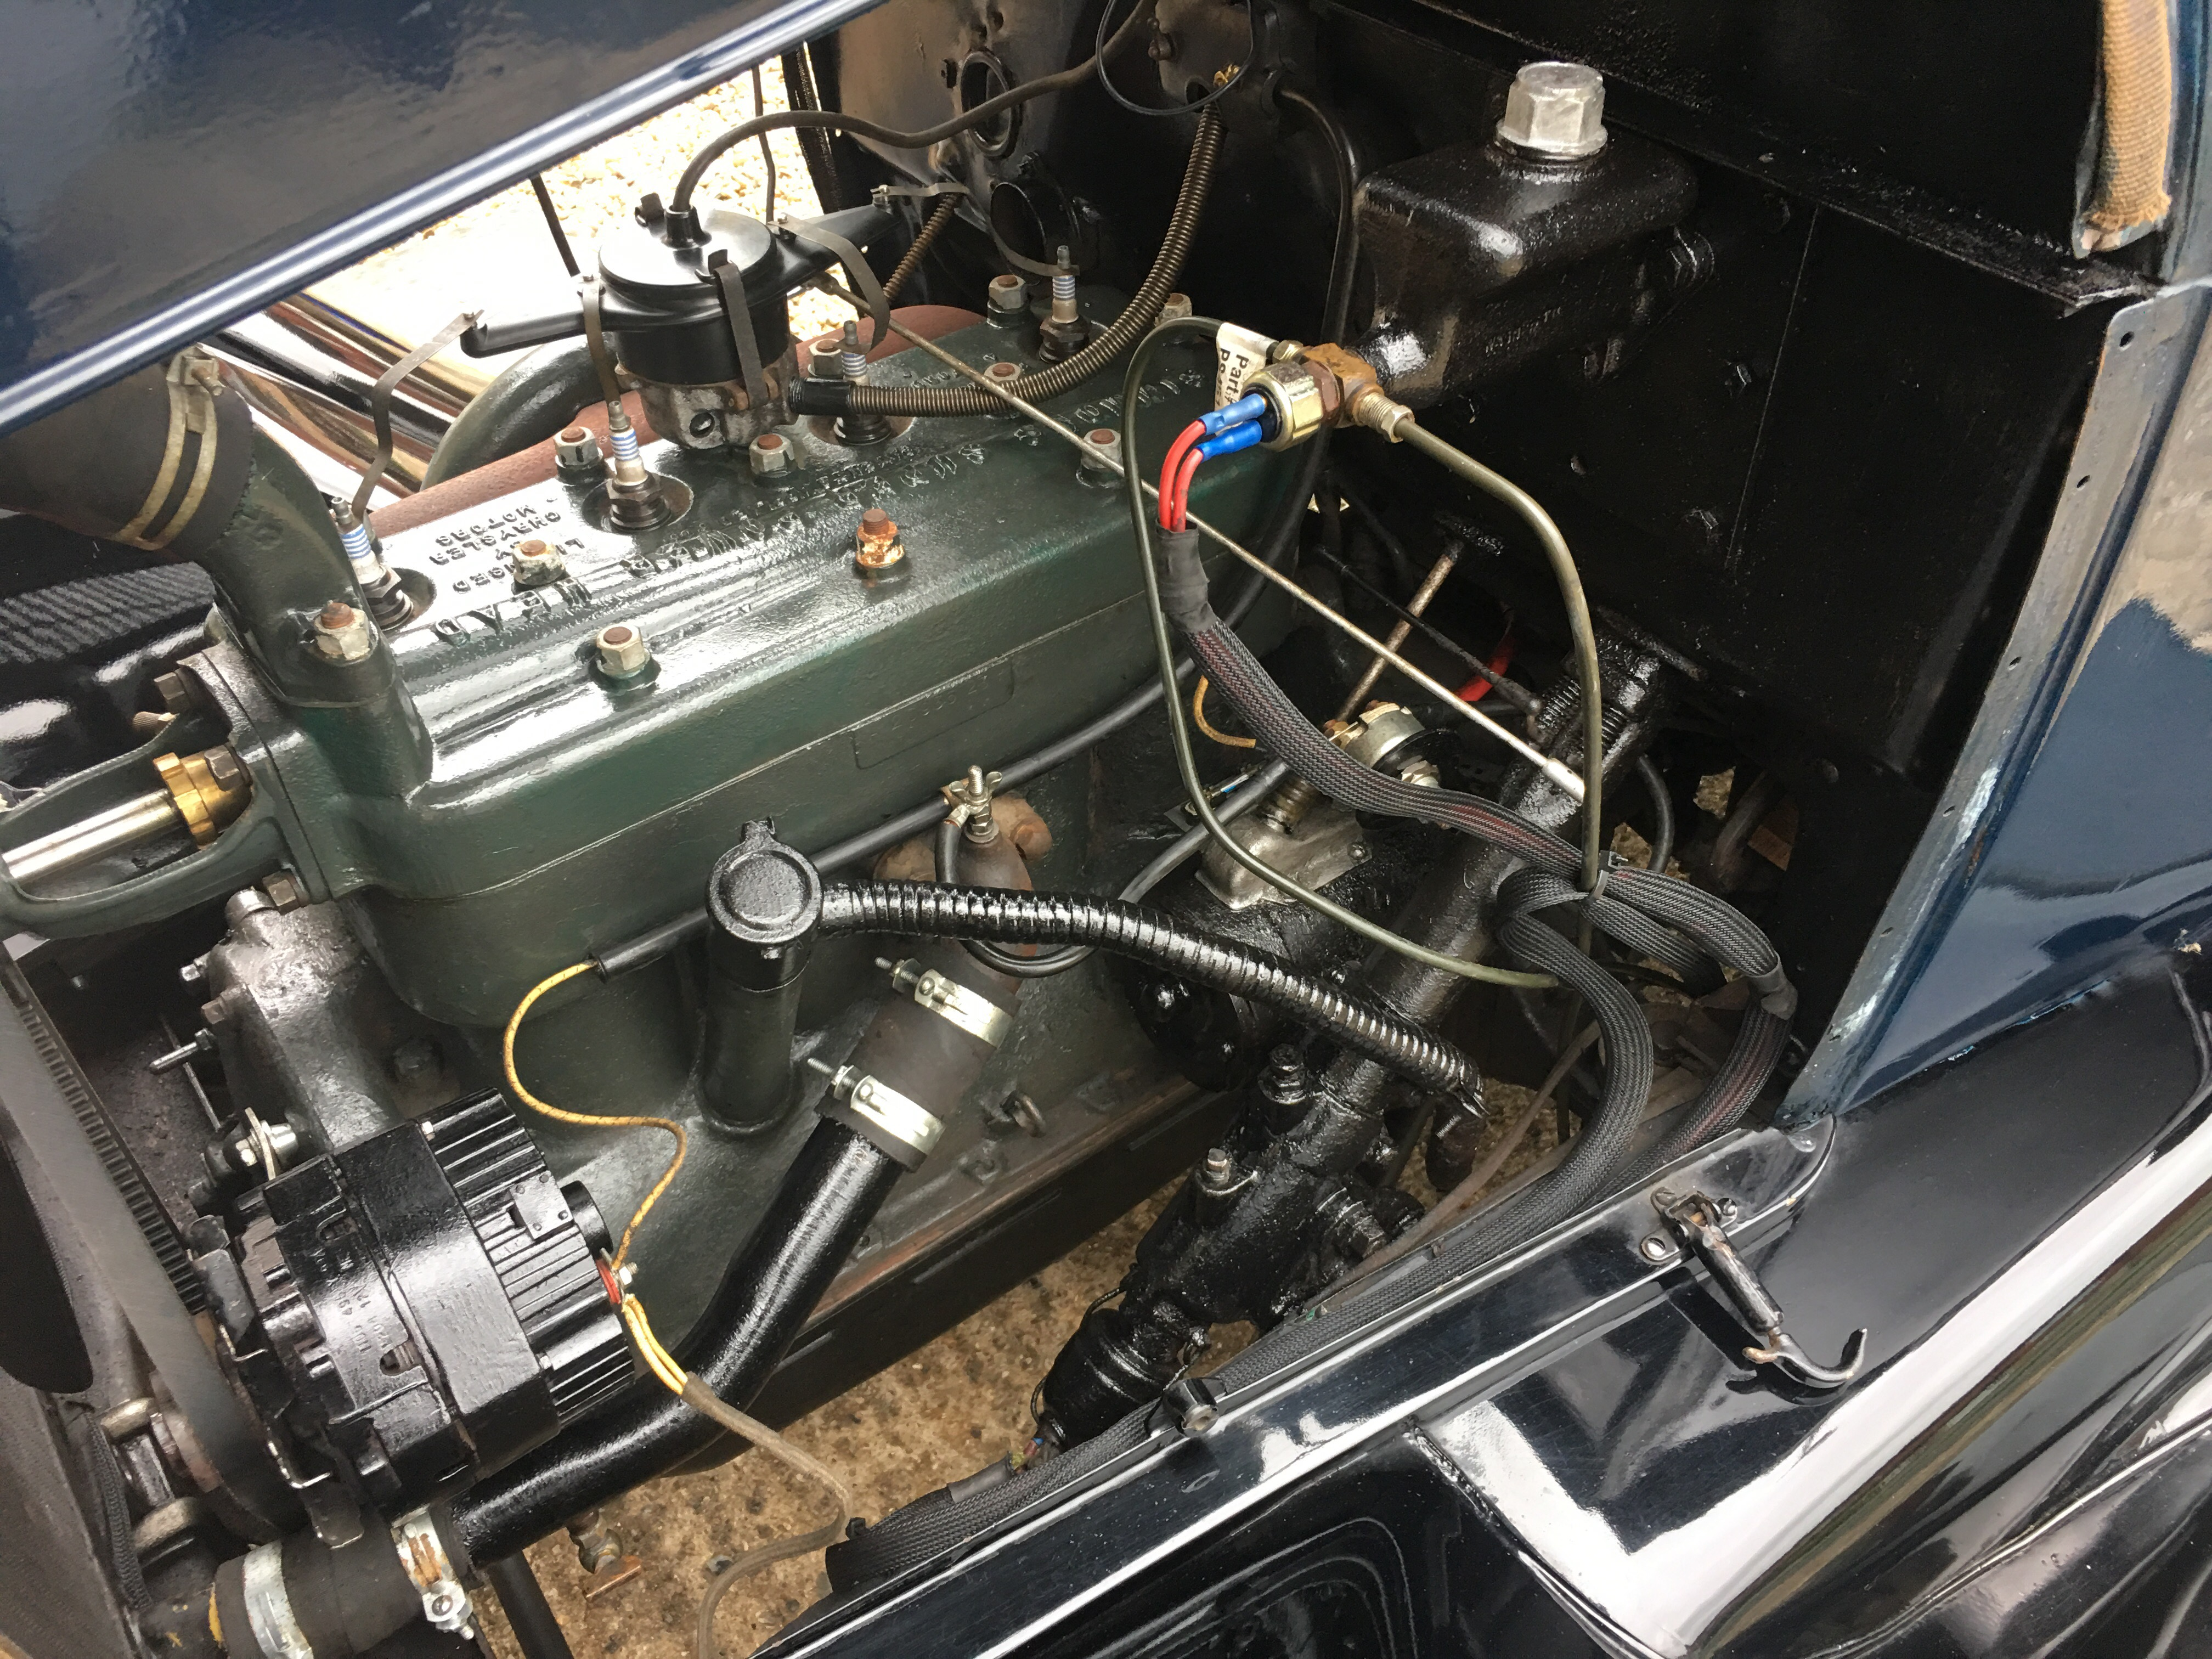 Model A Ford Restoration | Automotive American